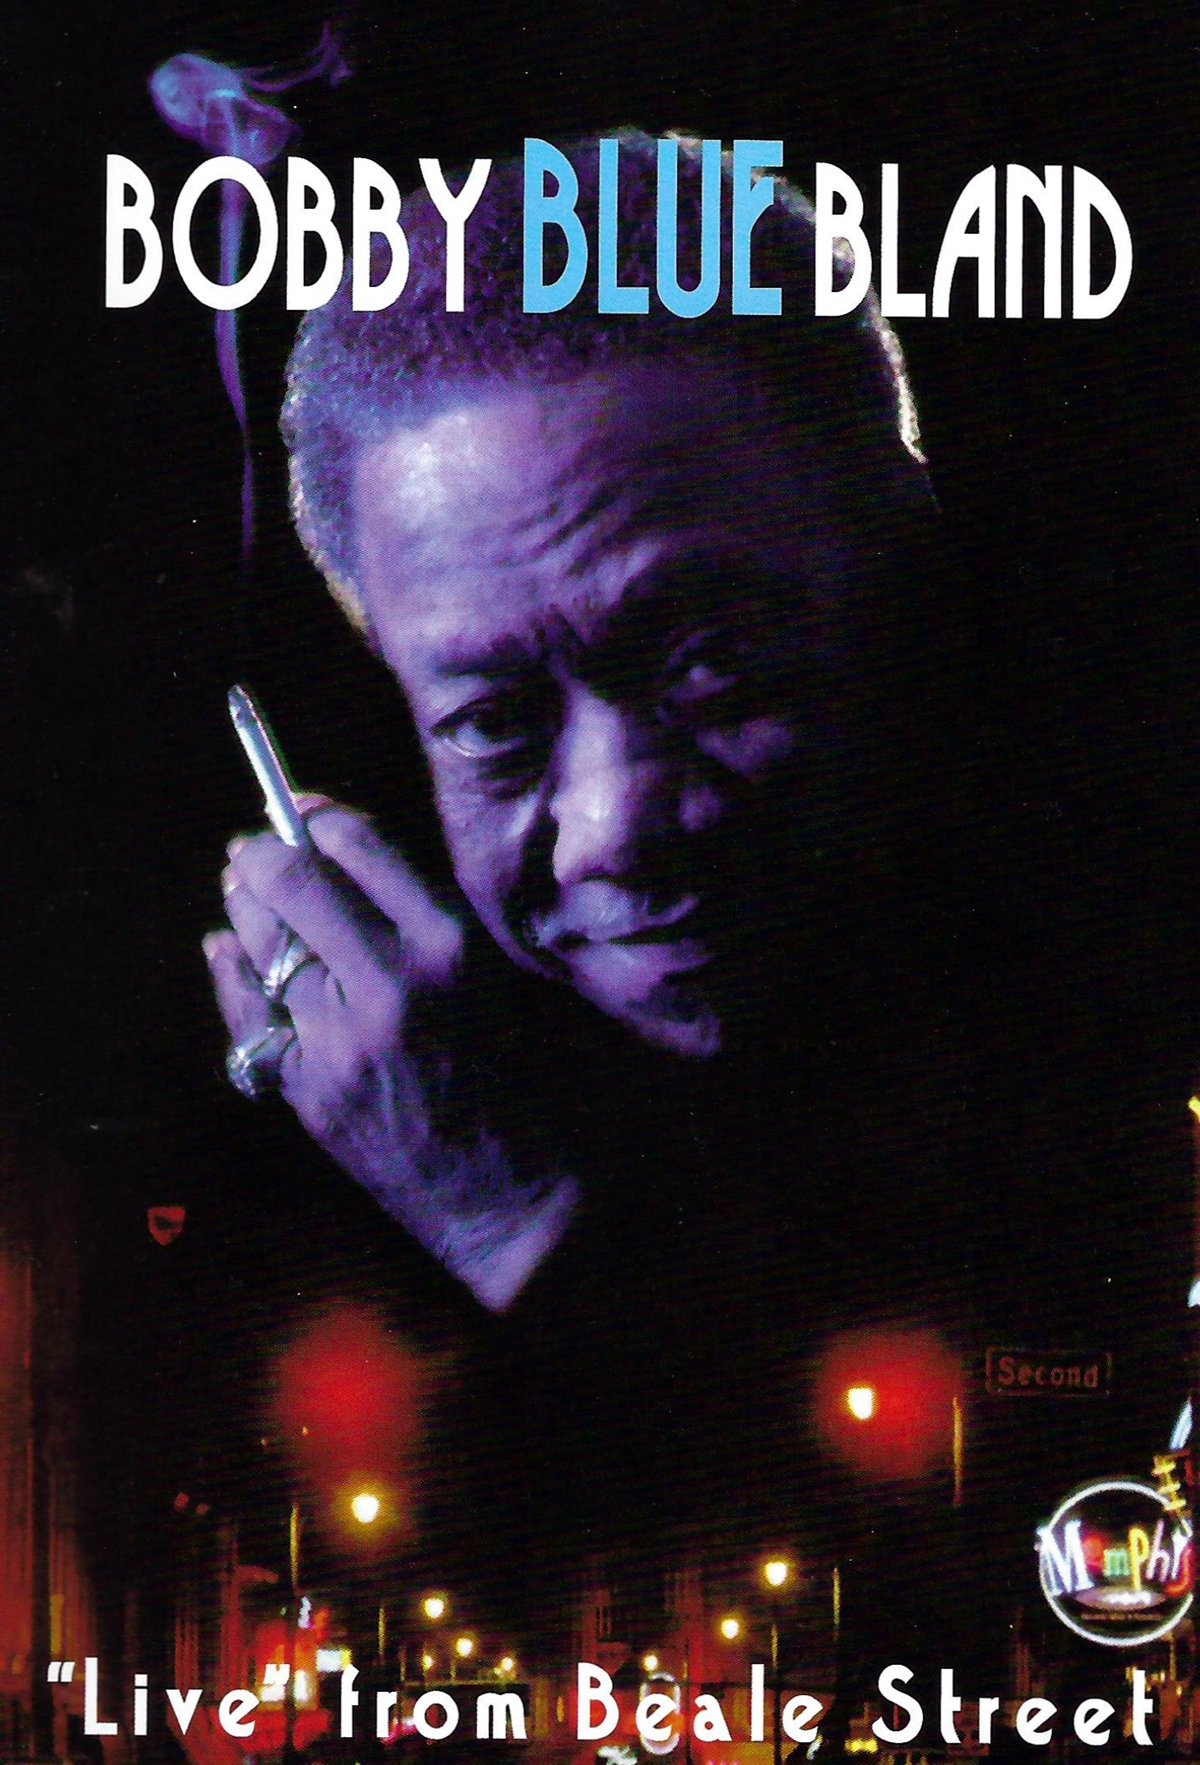 Bobby Blue Bland, Live from Beale Street, DVD, Drums and Percussion, 1997